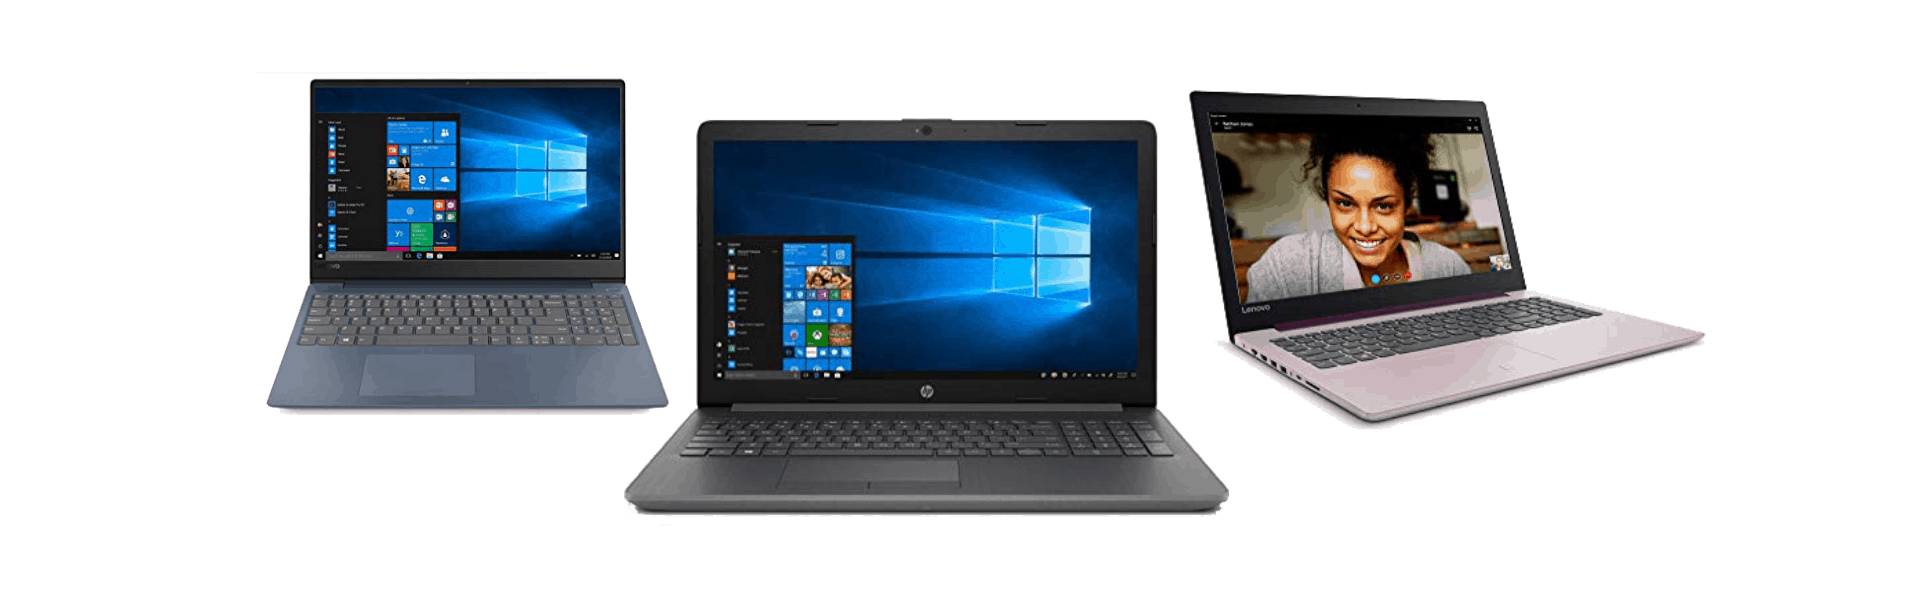 best 15 inch laptops under 500